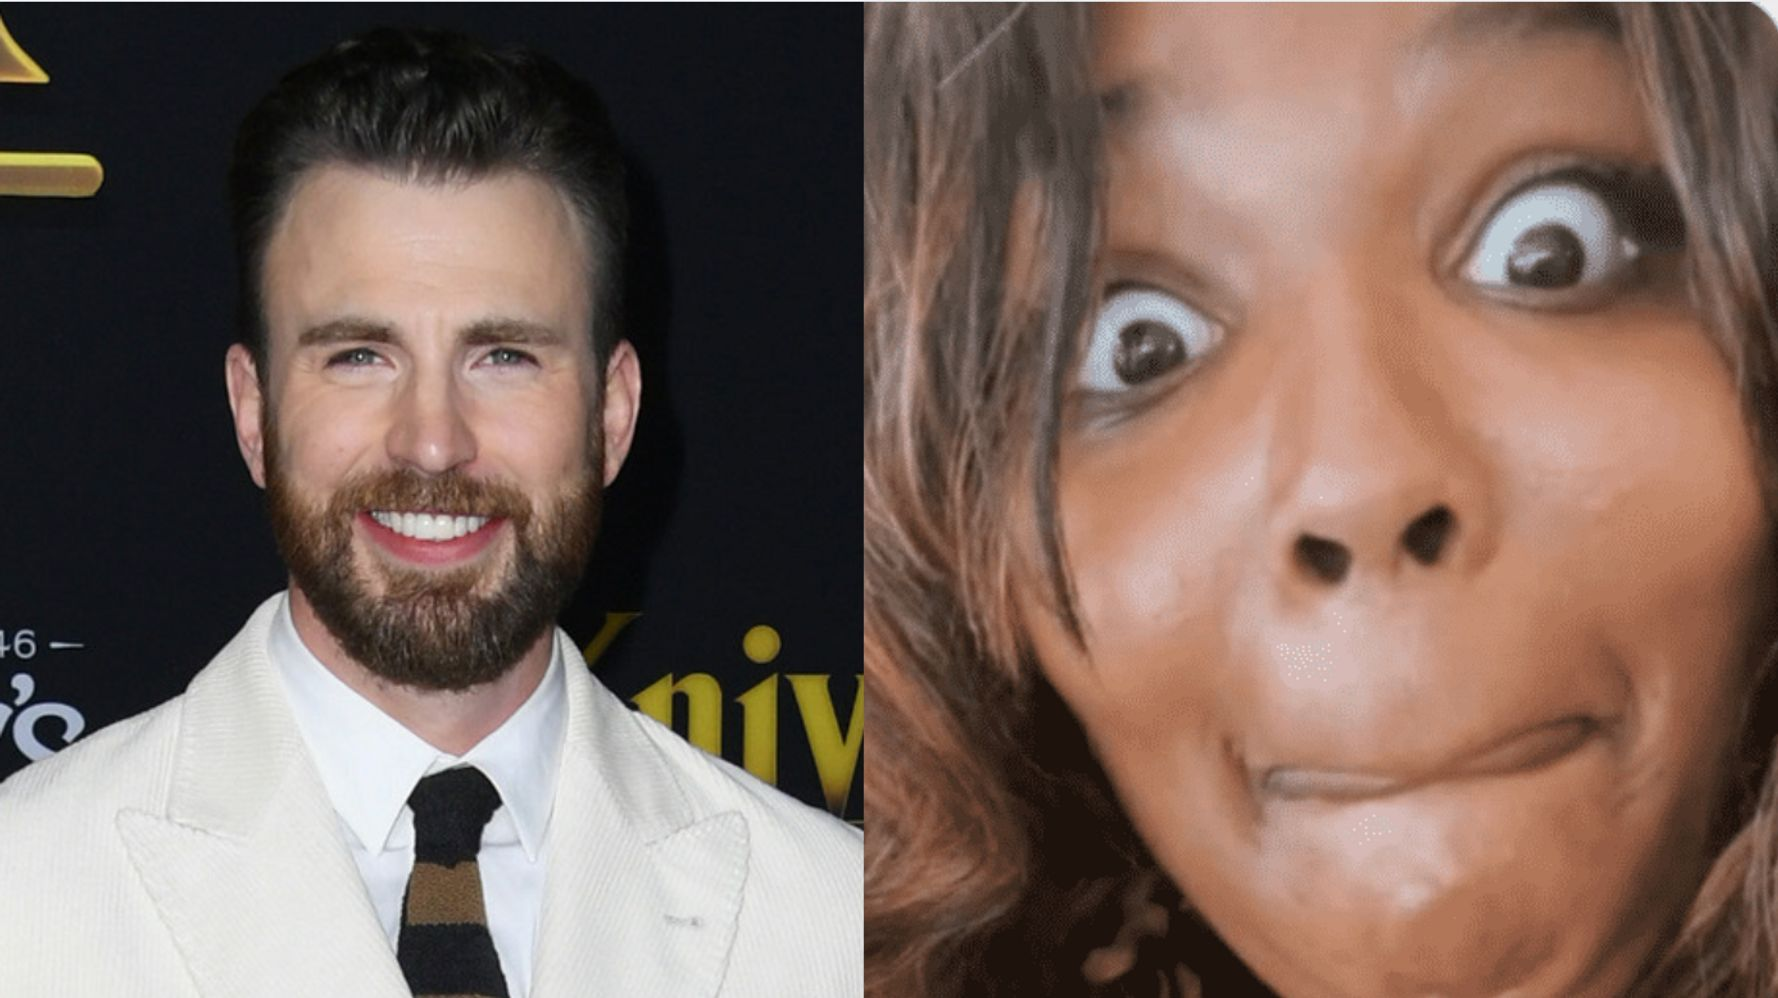 Lizzo Drunkenly Slid Into Chris Evans' DMs Like A Real Superhero